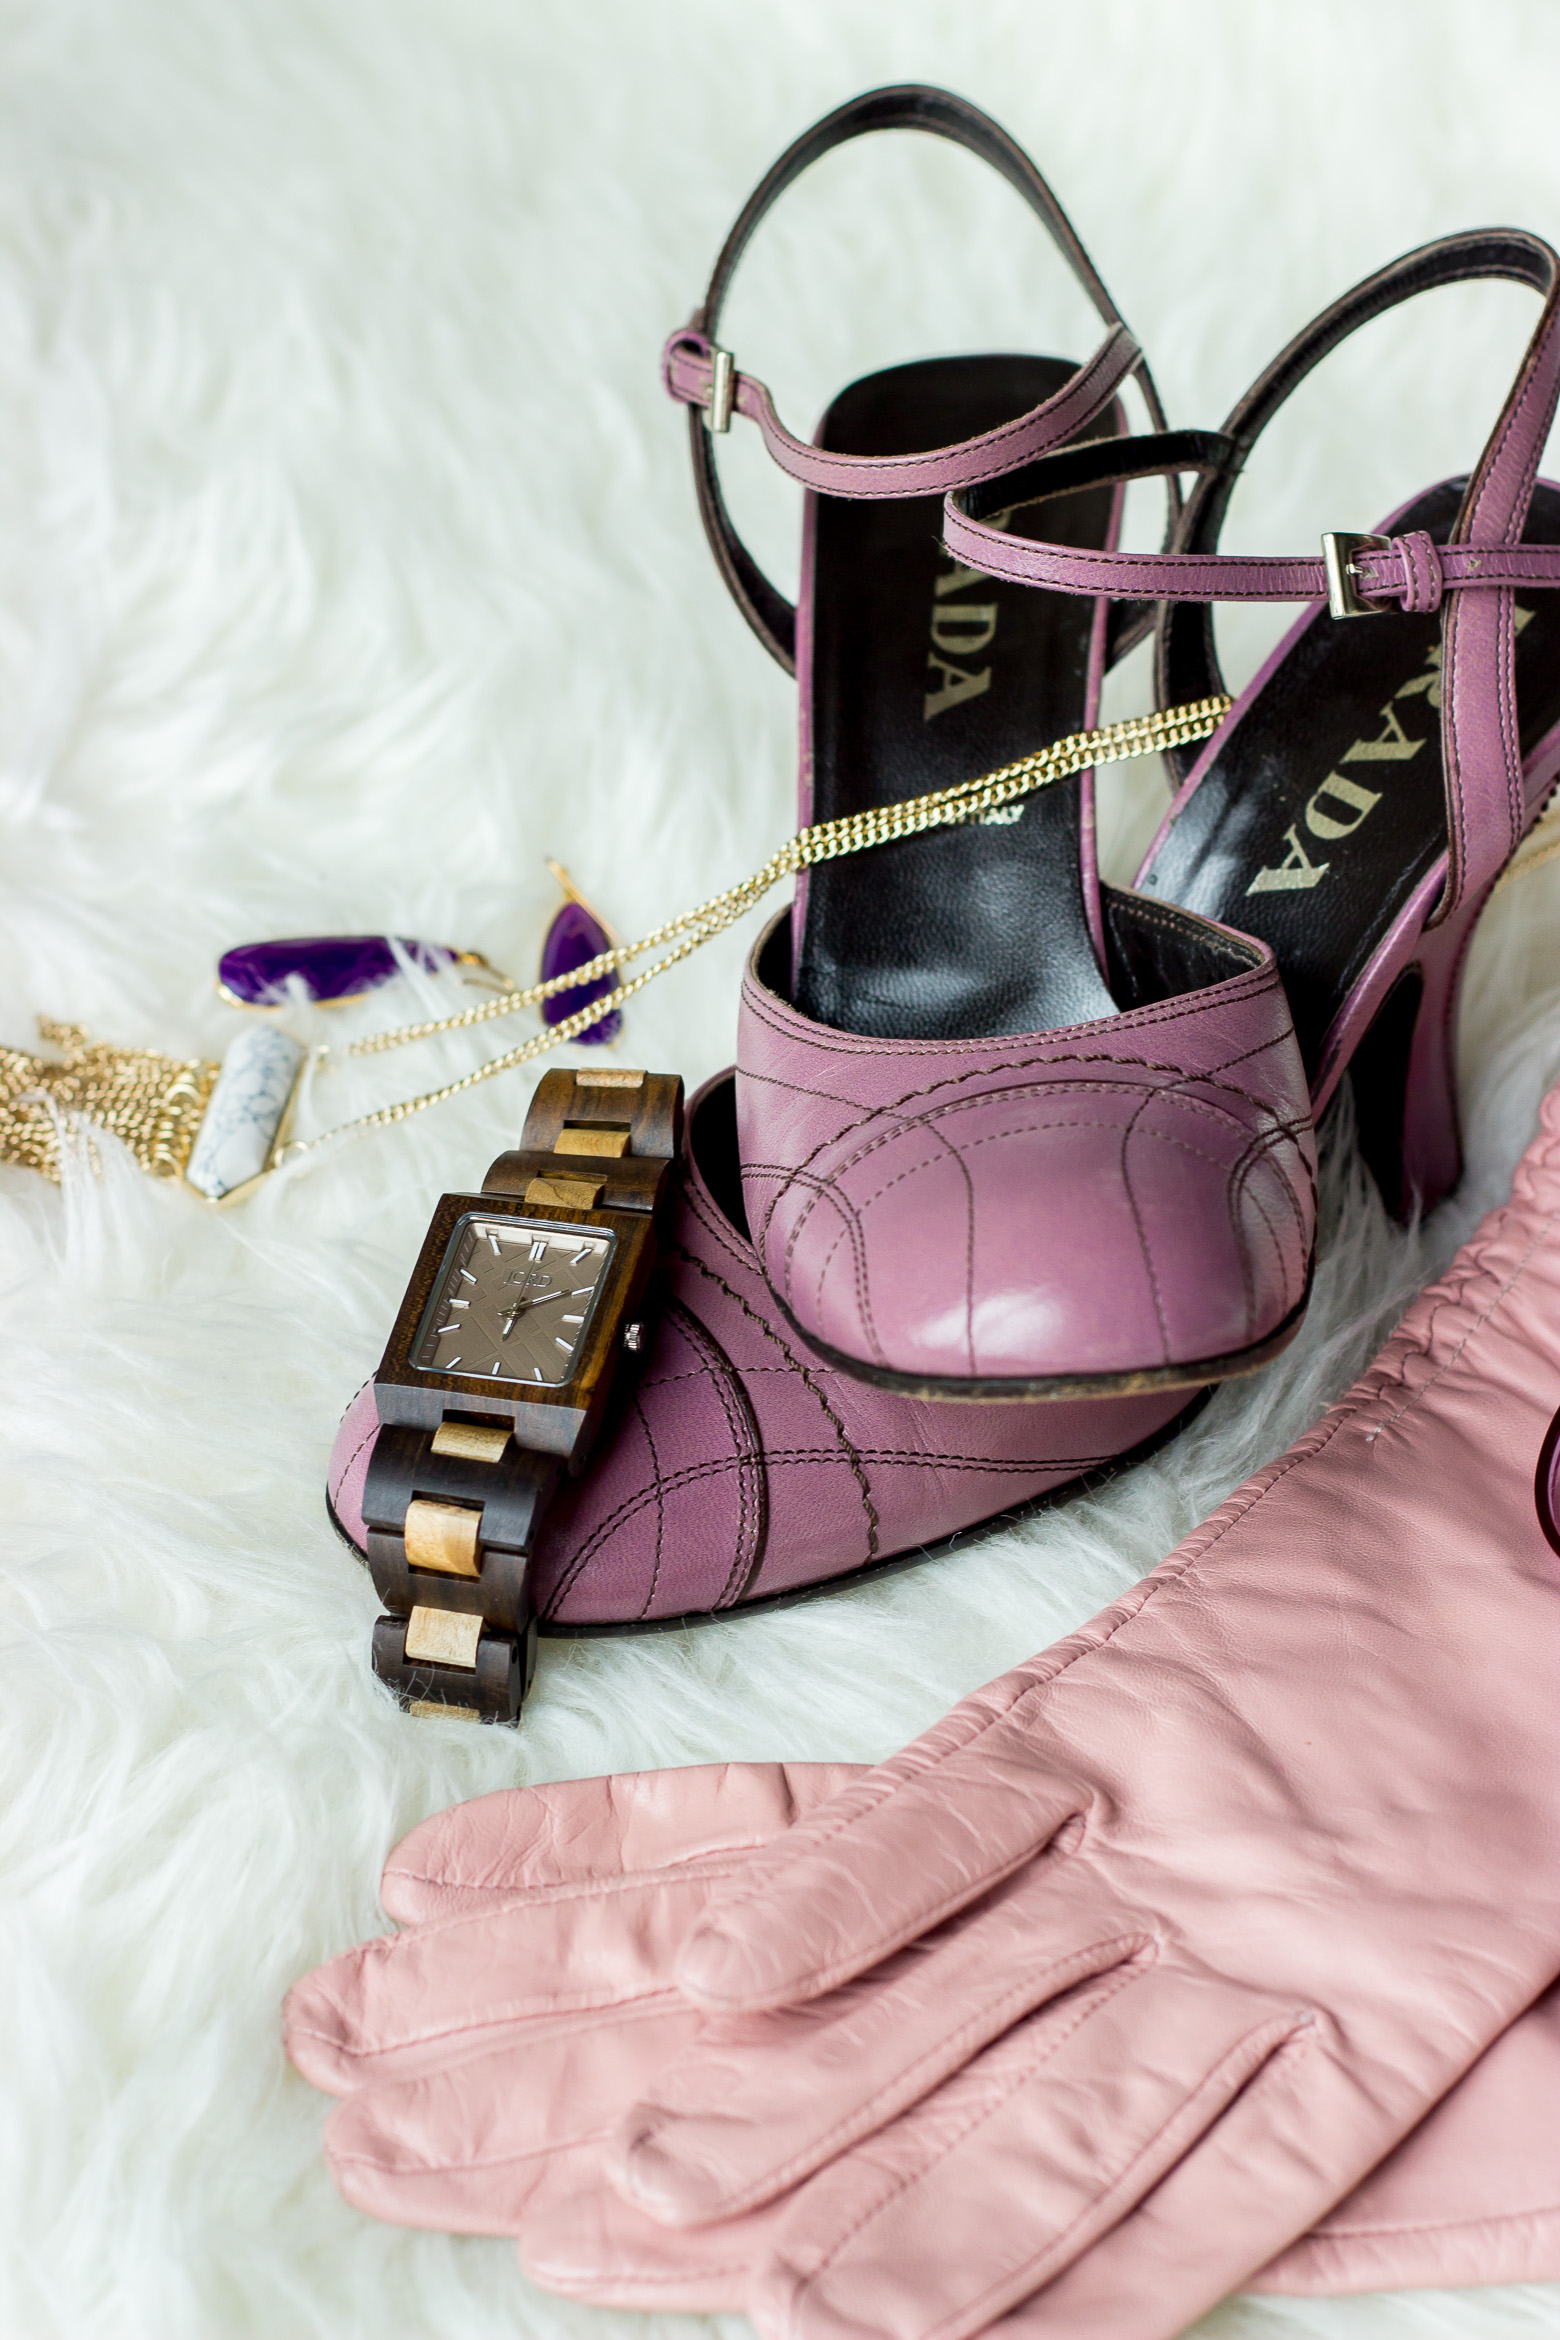 Purple Prada shoes